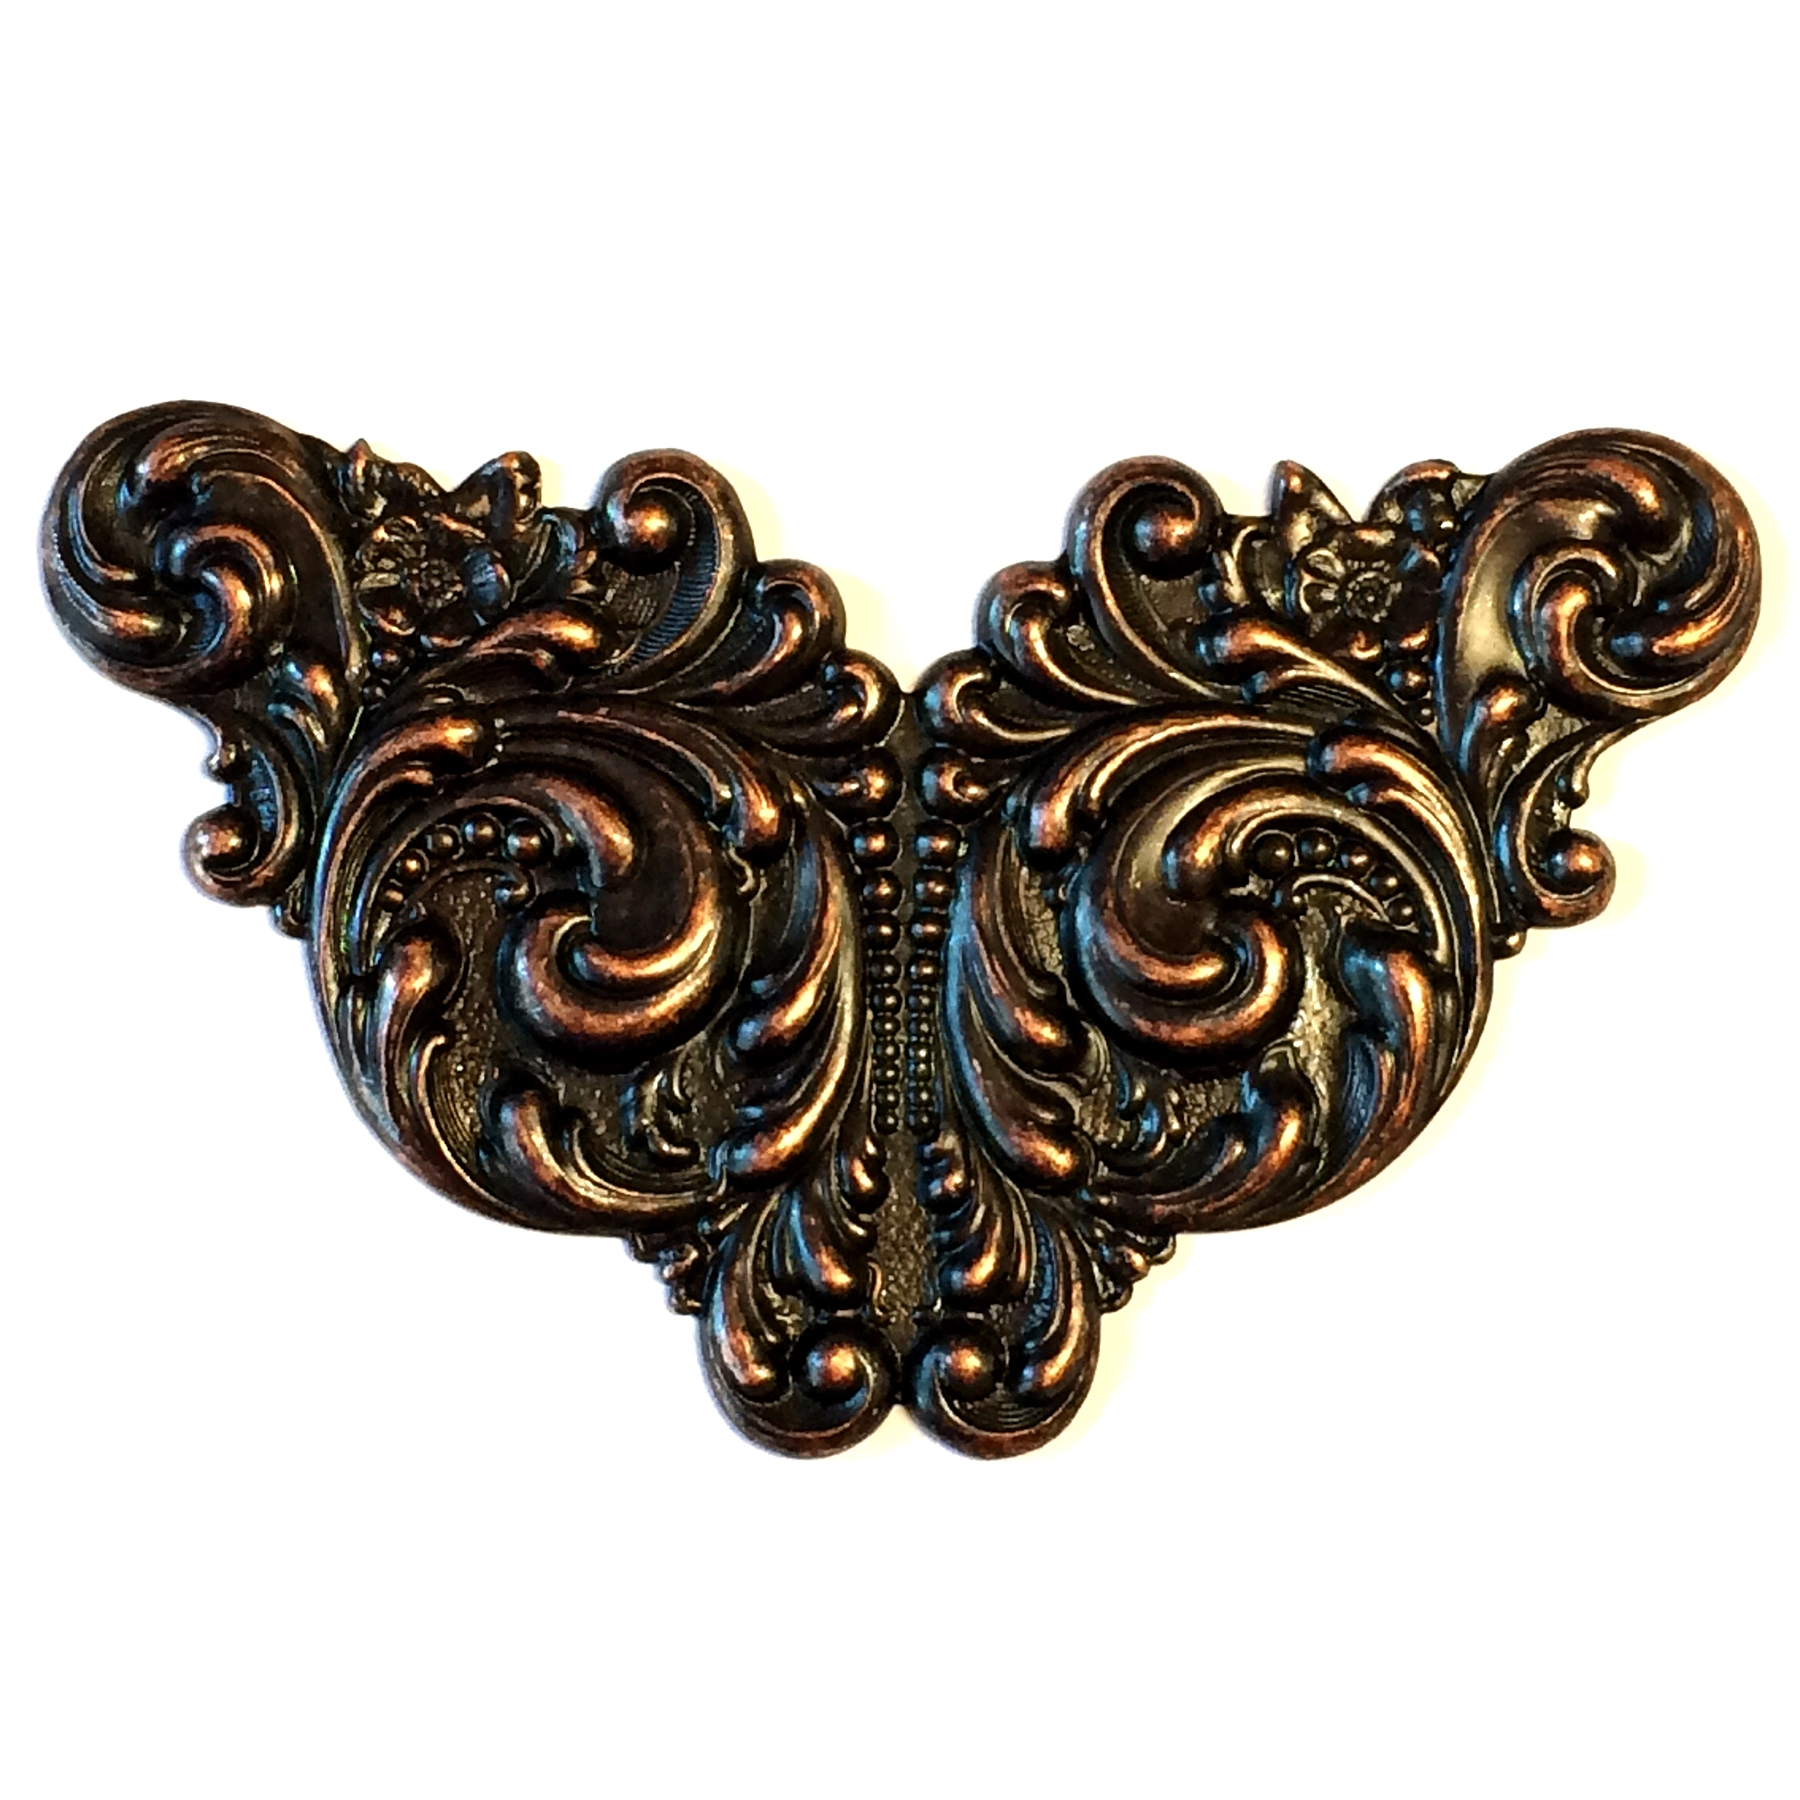 brass leaf stampings, Victorian, rusted iron, 03427, antique copper, Bsue Boutiques, nickel free, vintage jewelry supplies, brass jewelry parts, US made, winged leaf stamping